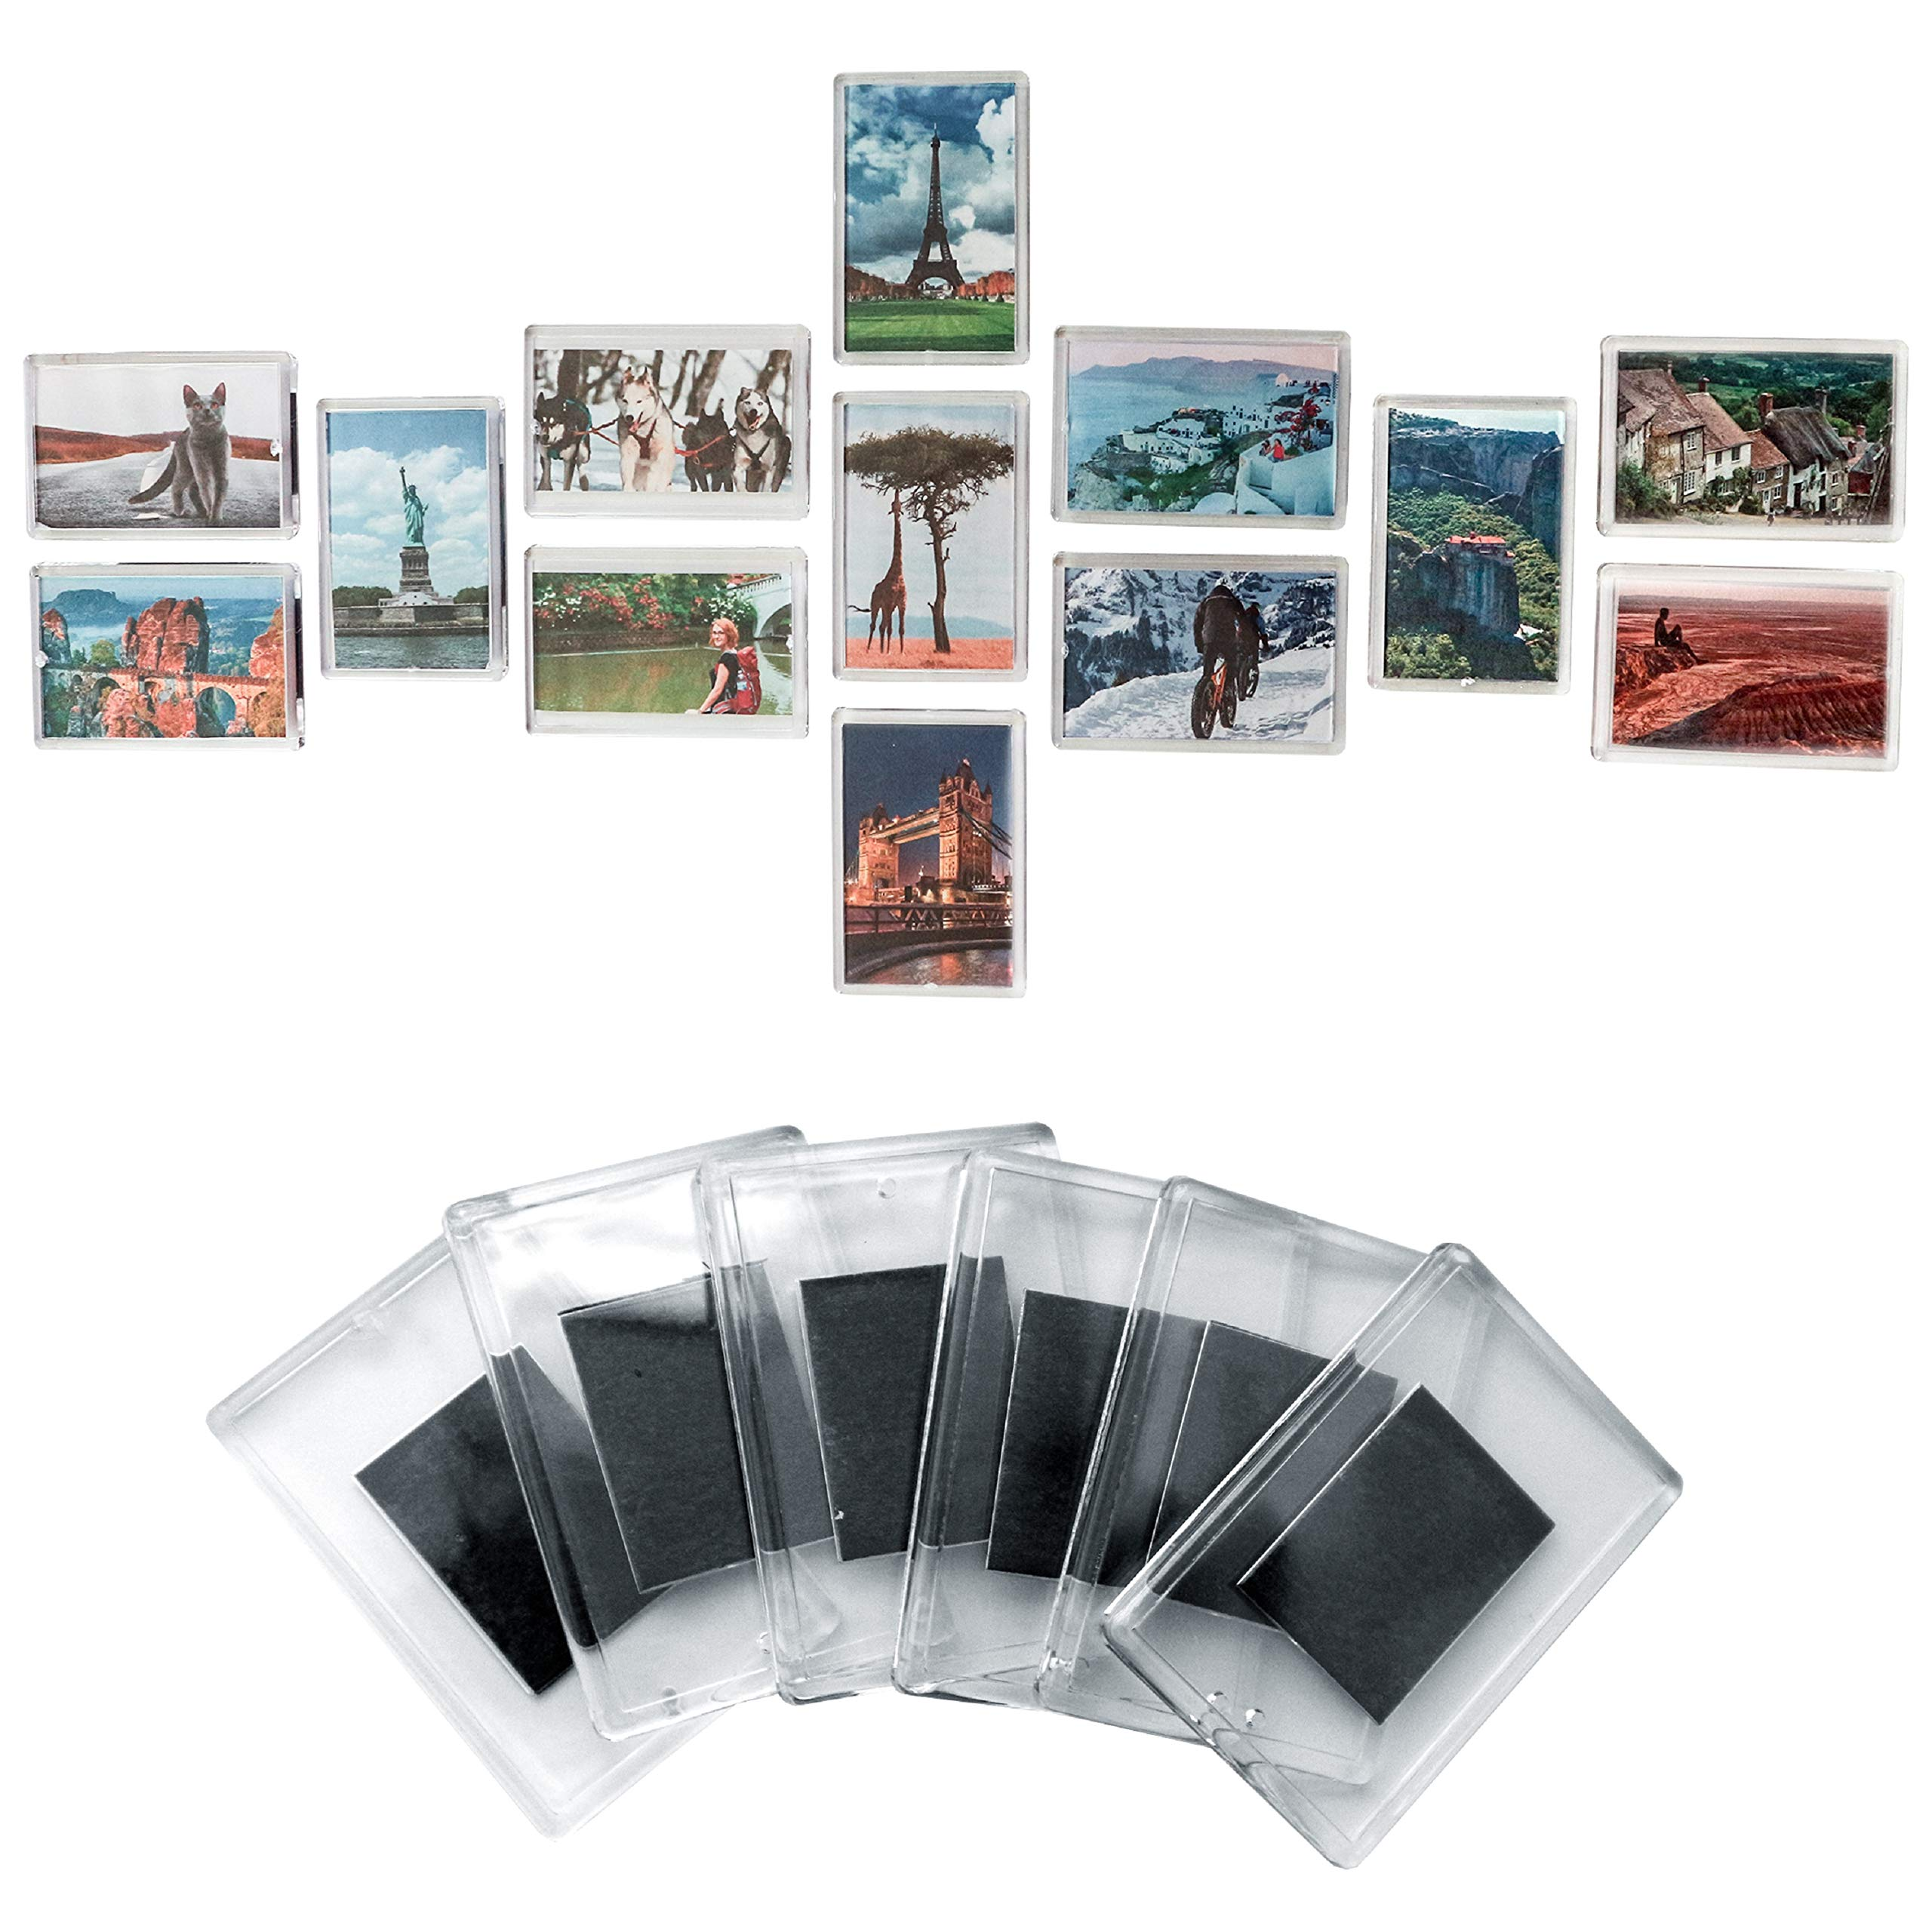 Magnetic Frame (20 Pack) - 2.7 x 1.7 inch Blank Photo Frame for Refrigerator - Clear Acrylic Frames - Fridge Magnets with Photo Insert - Magnetic Picture Frames to Display Family Photos and Art Work by Kurtzy